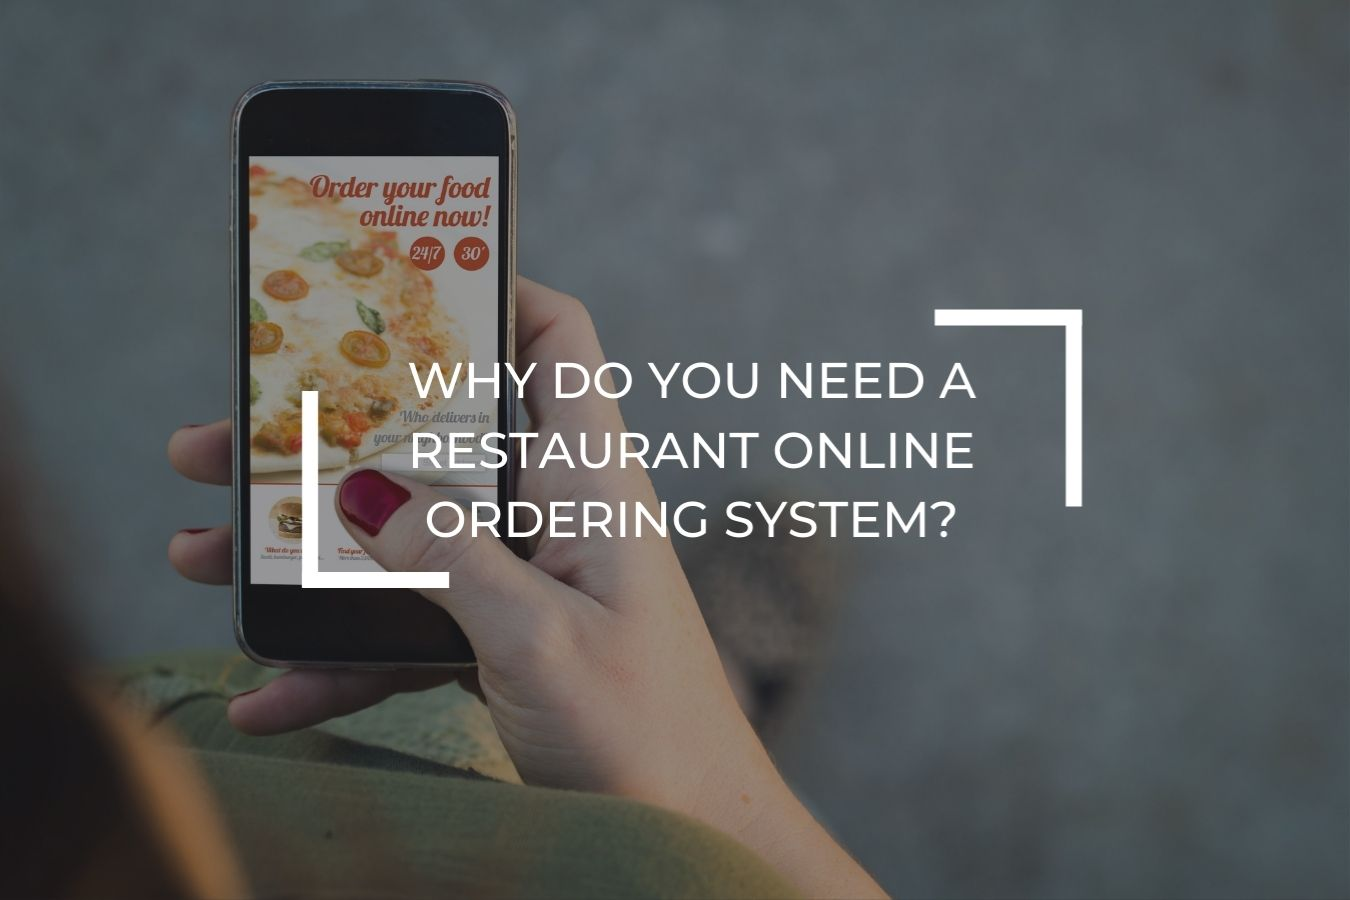 Why do you need a restaurant online ordering system